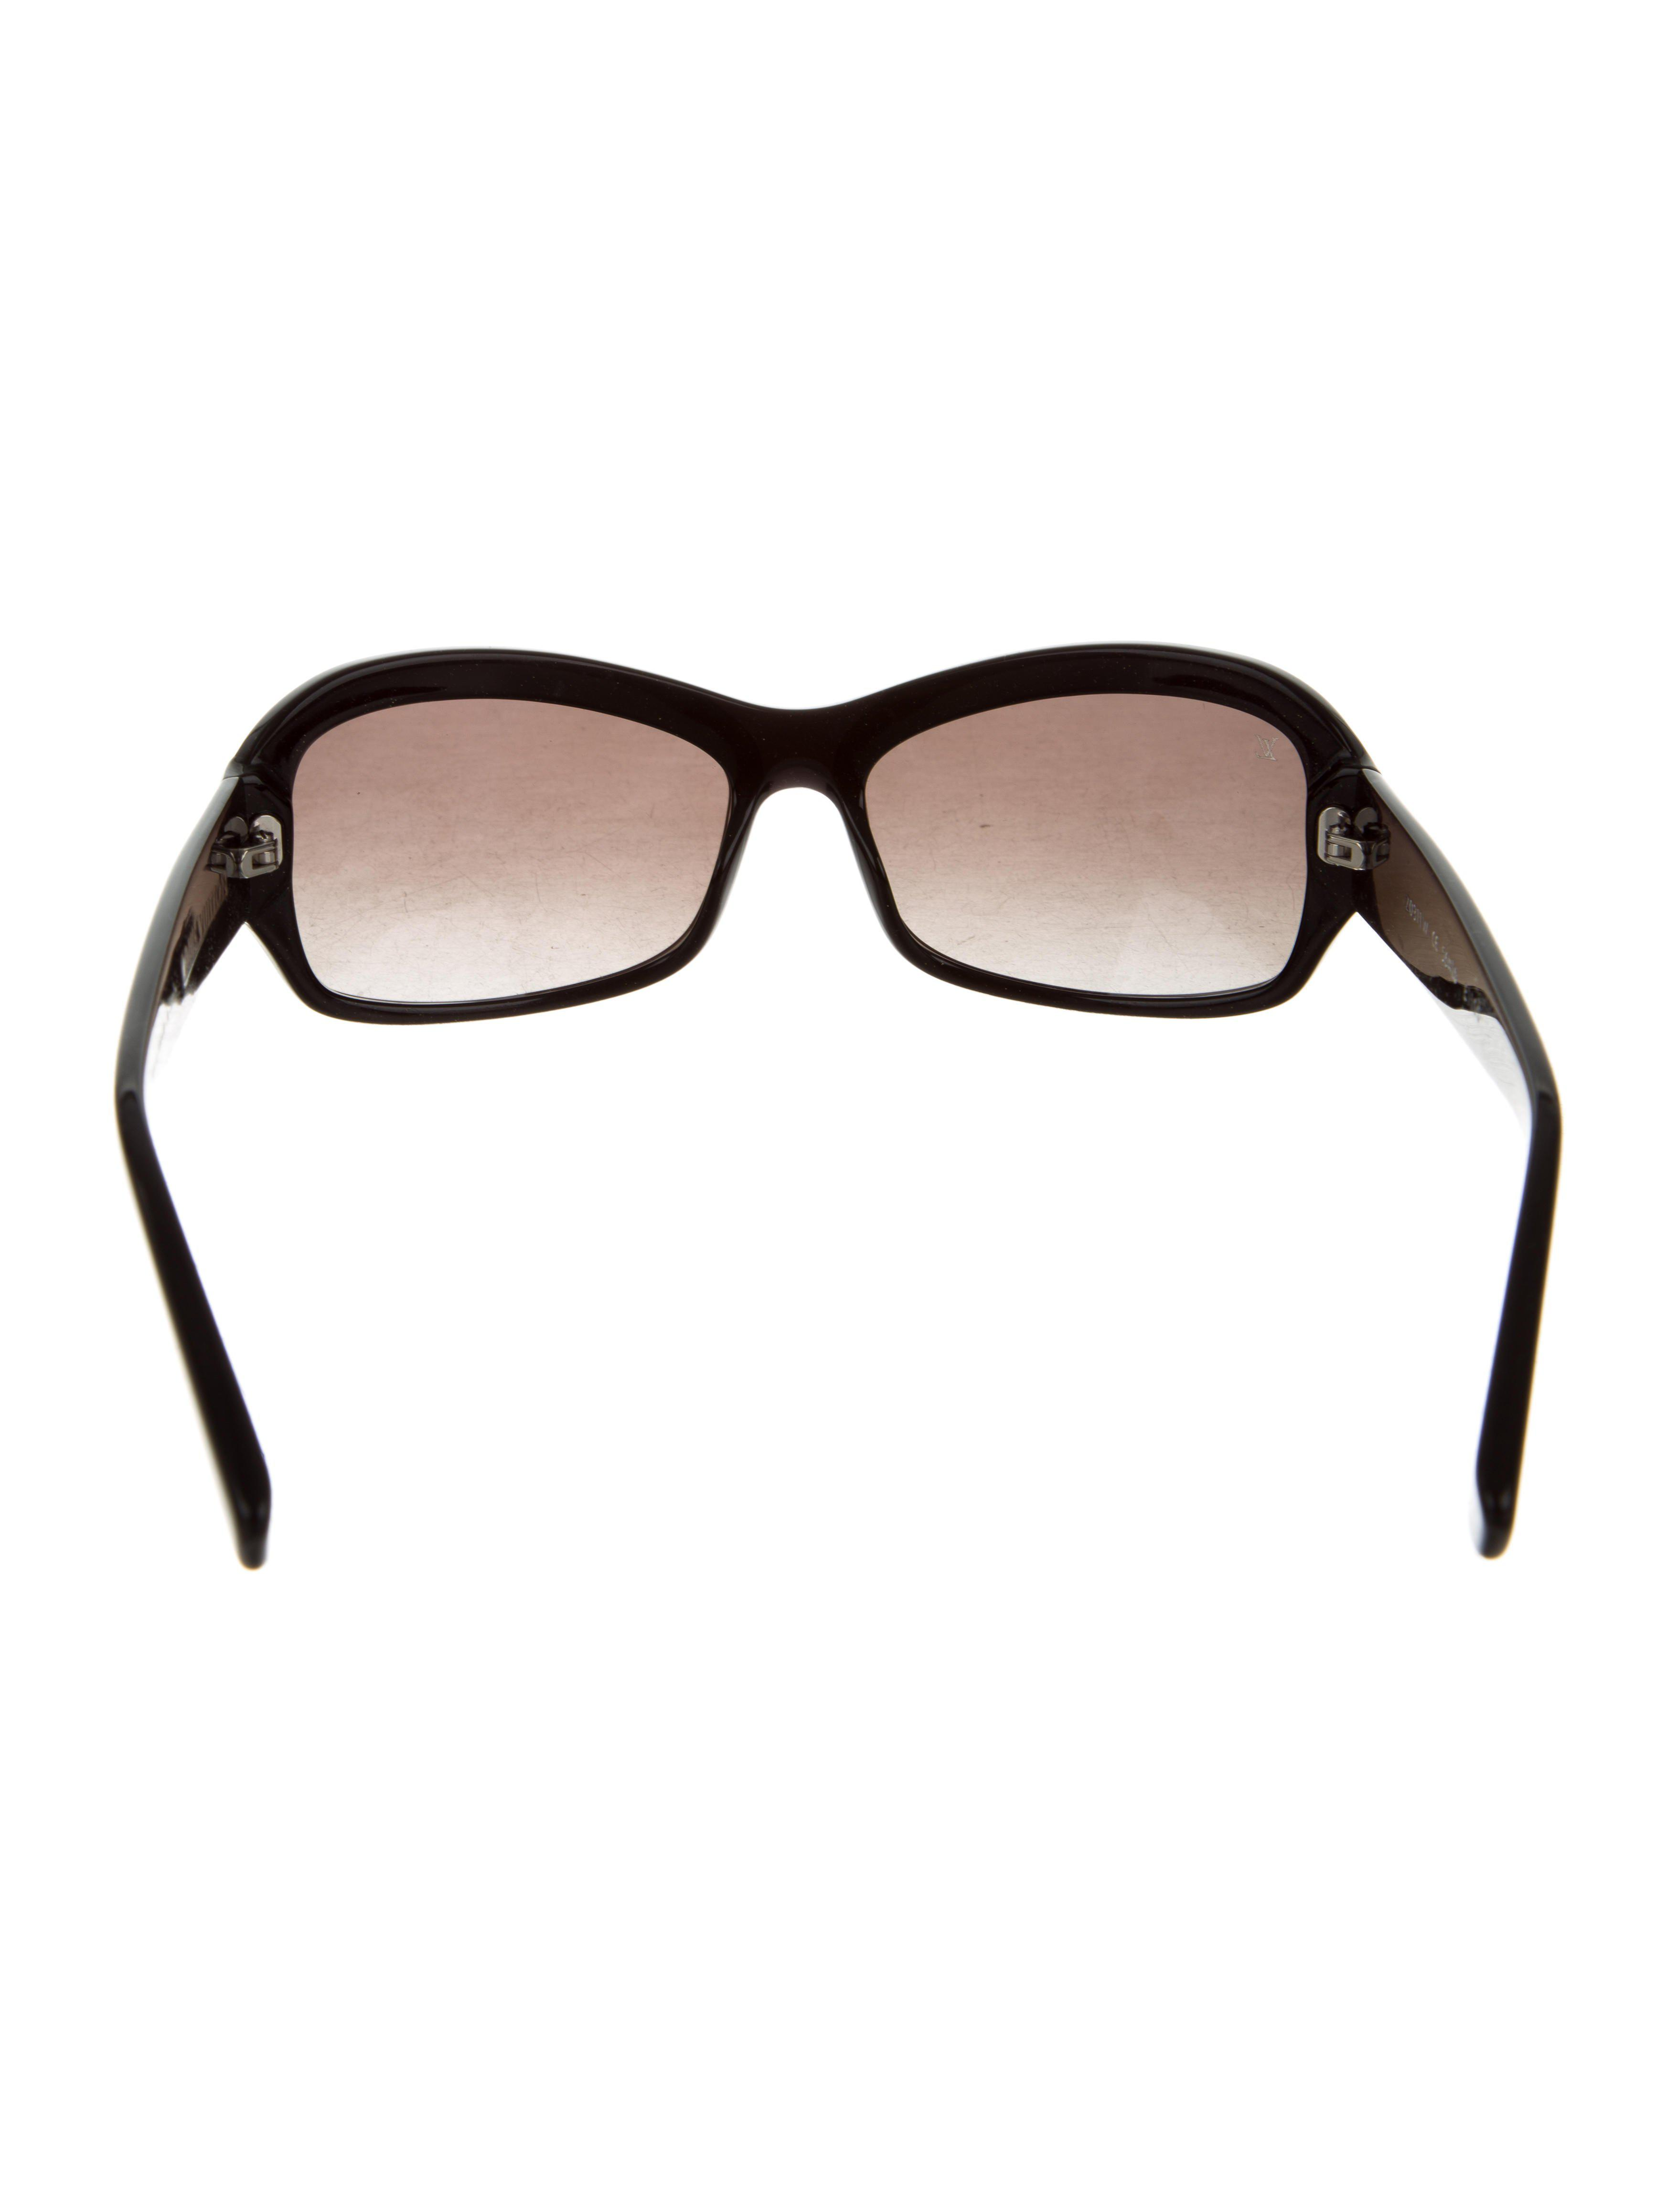 c289aefcfd3 Lyst - Louis Vuitton Obsession Carré Sunglasses in Black